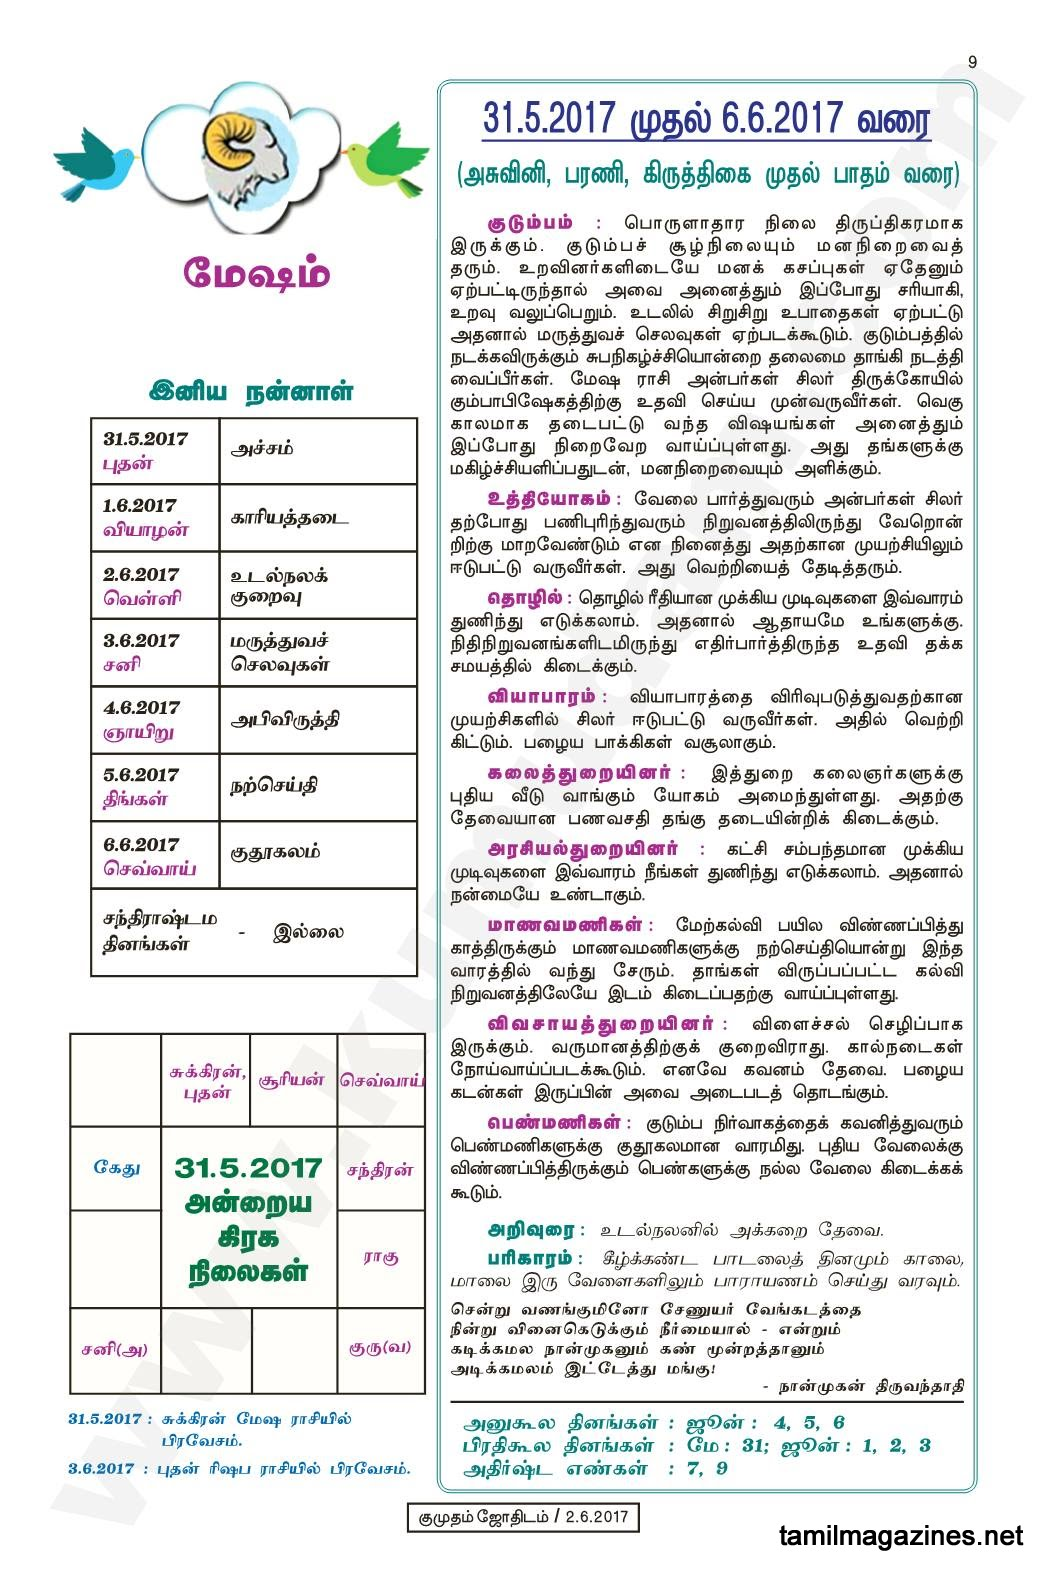 Kumudam Jothidam Raasi Palan May 31 to June 6, 2017